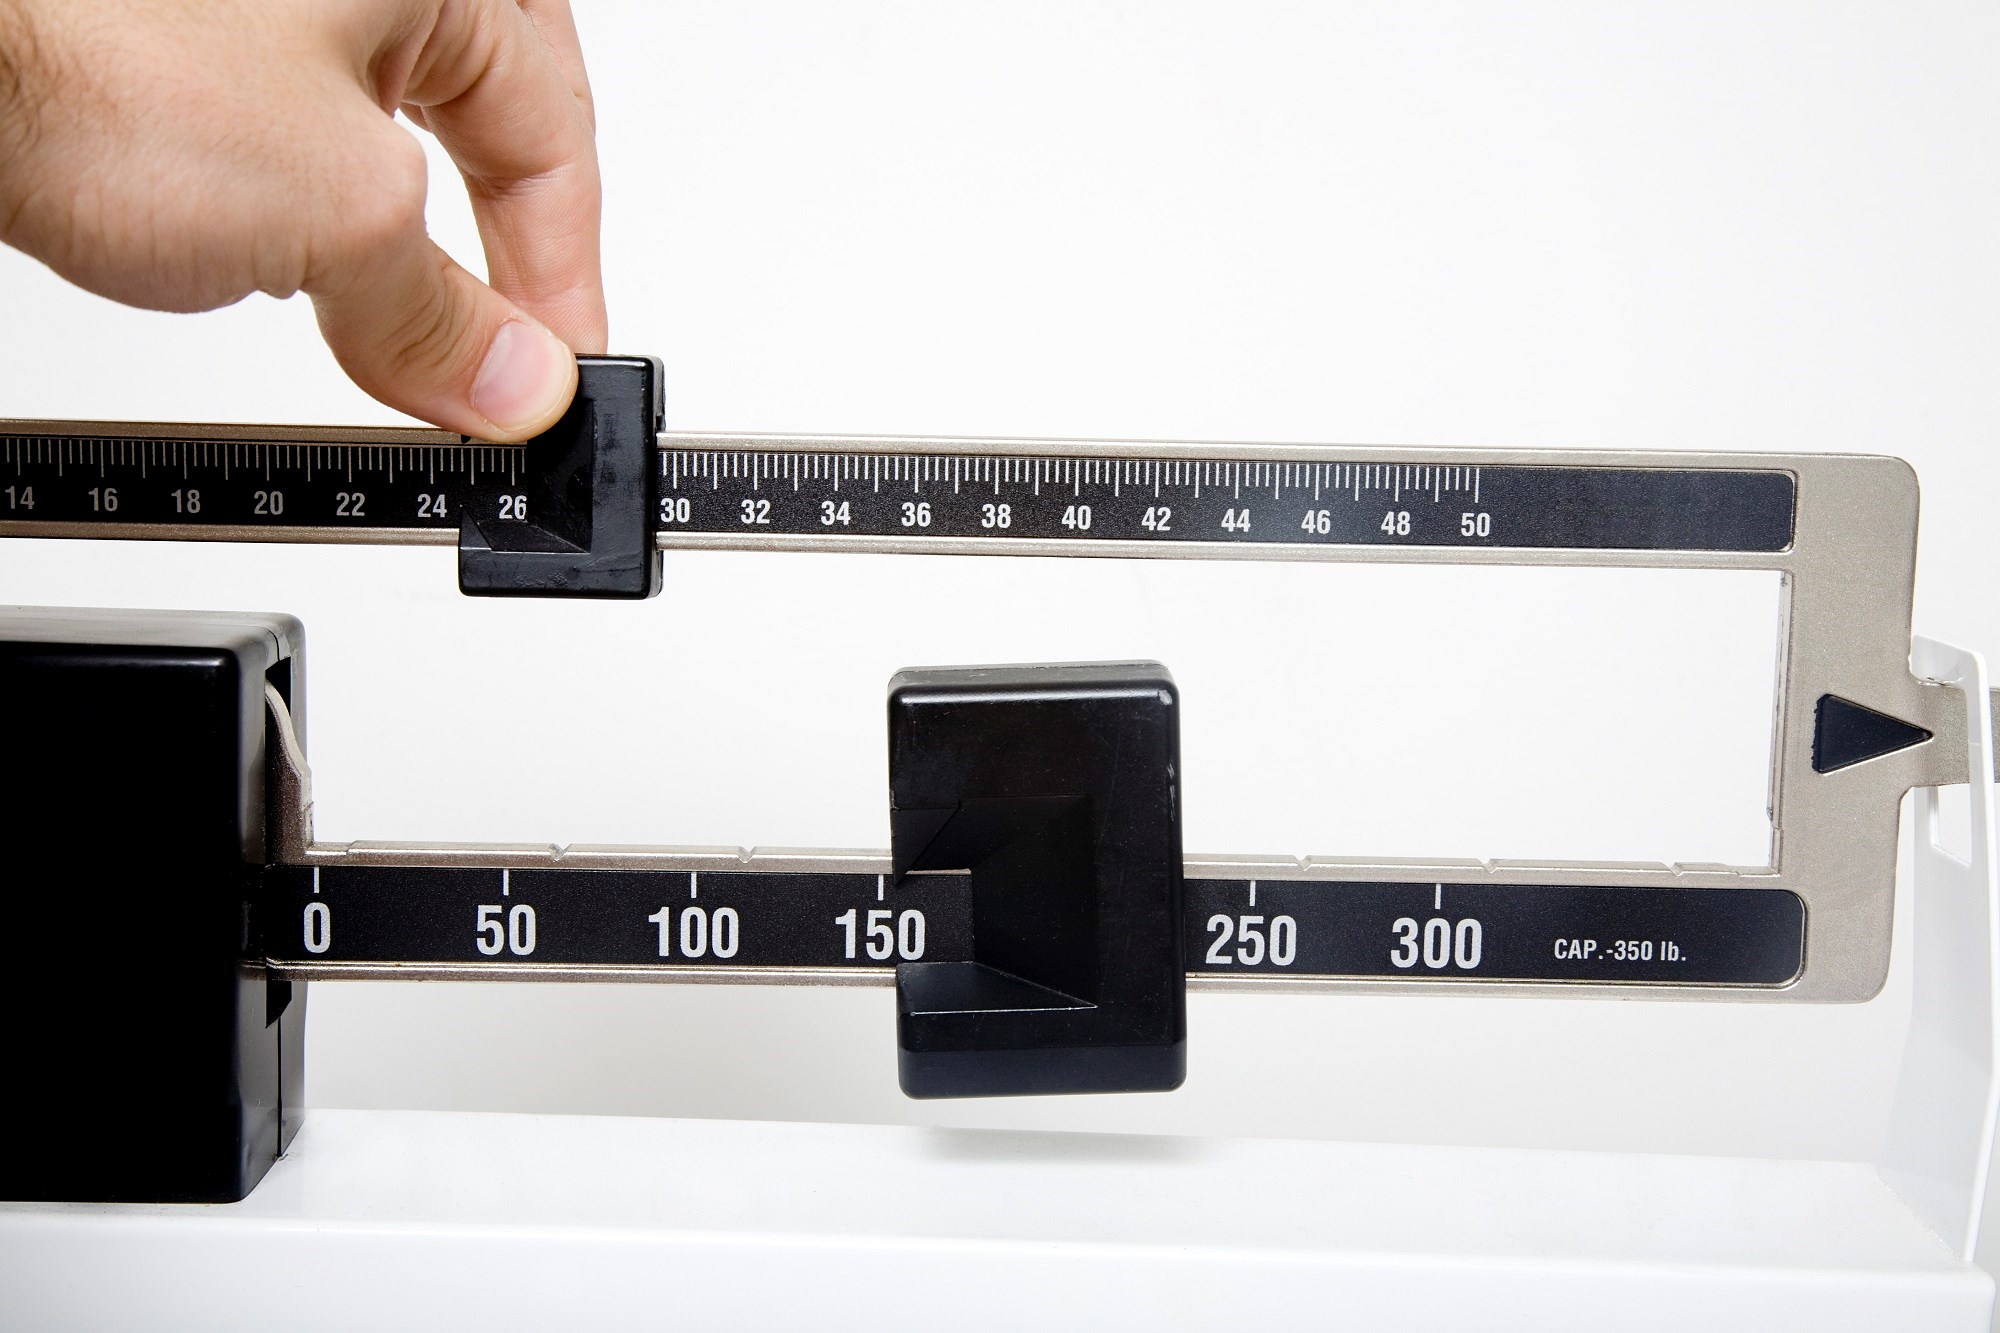 Along with body mass index, researchers assessed total cholesterol, triglycerides, high-density lipoprotein cholesterol, very low-density lipoprotein cholesterol, and apolipoprotein A-1.